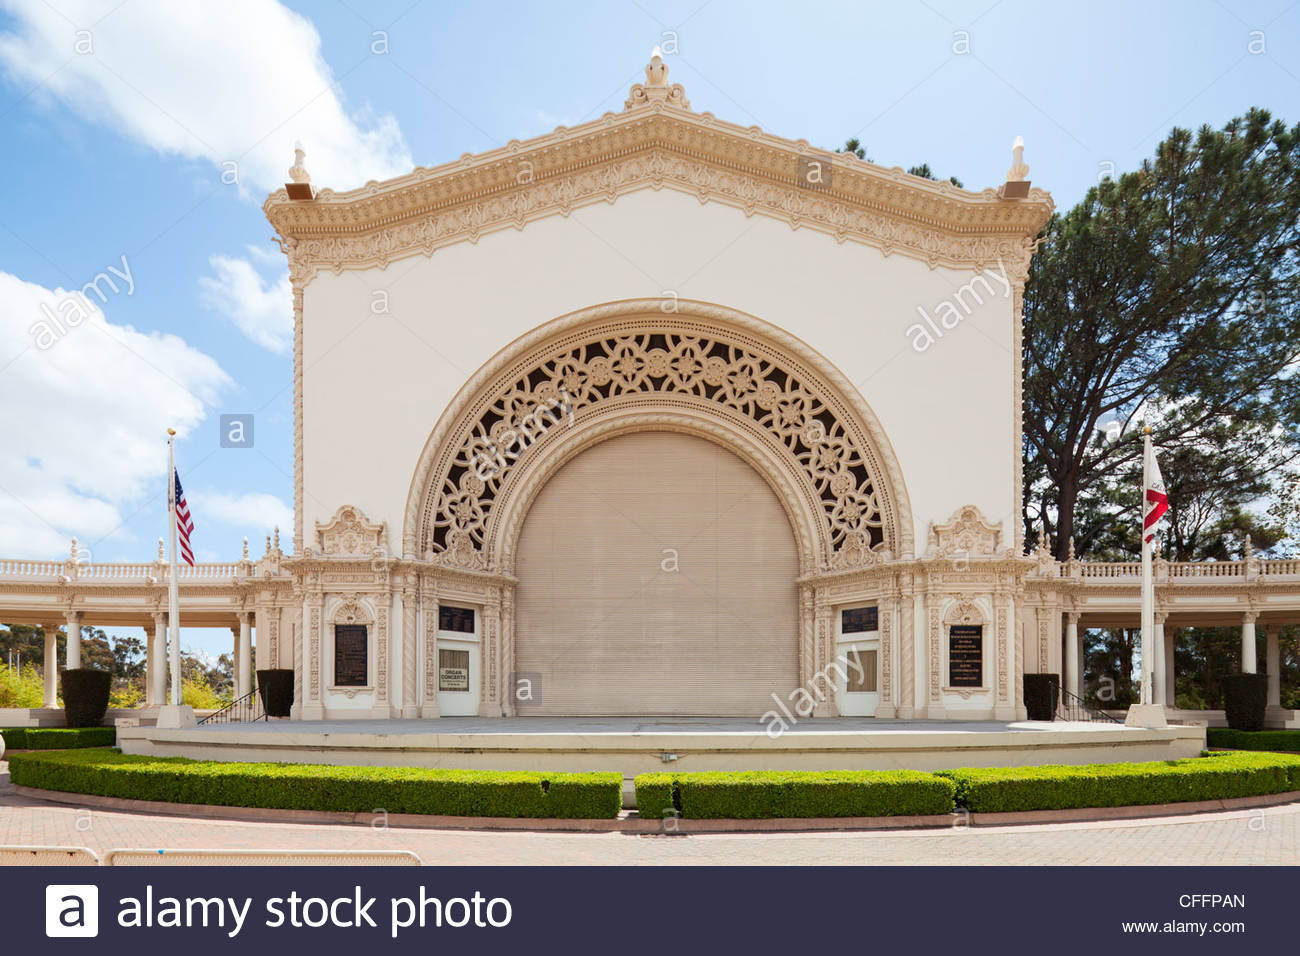 Timken House San Diego, Spreckels Organ Pavilion, San Diego Stock Photo, Royalty Free ...